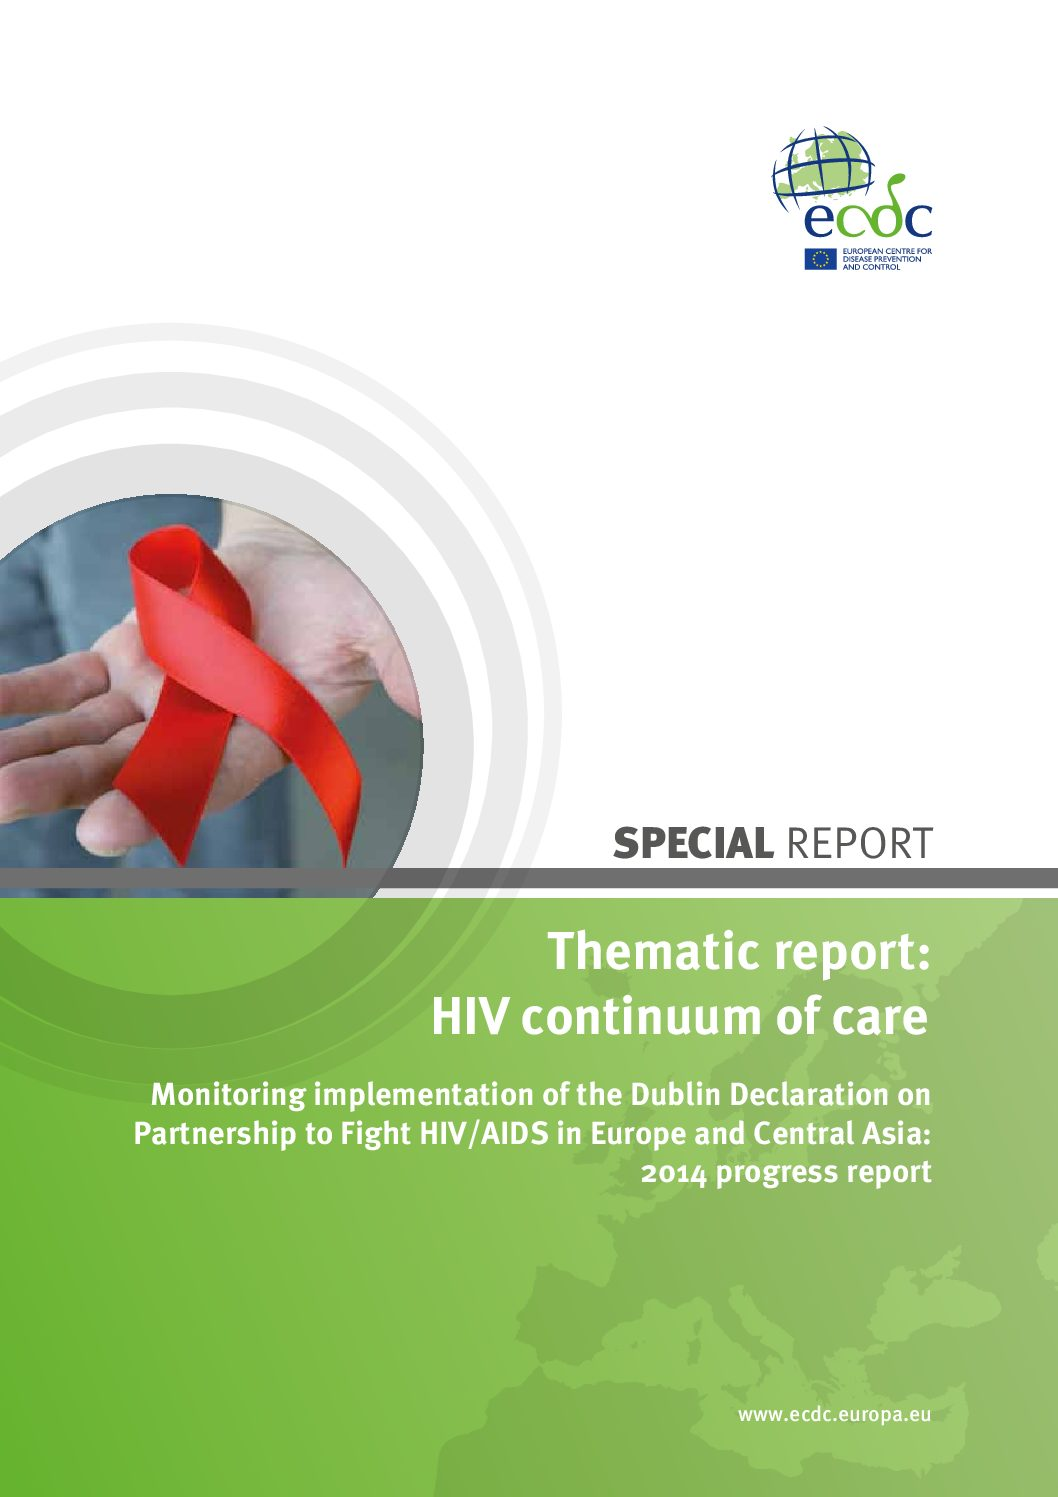 Thematic report HIV continuum of care. Monitoring implementation of the Dublin declaration on partnership to fight HIV-AIDS in Europe and Central Asia 2014.